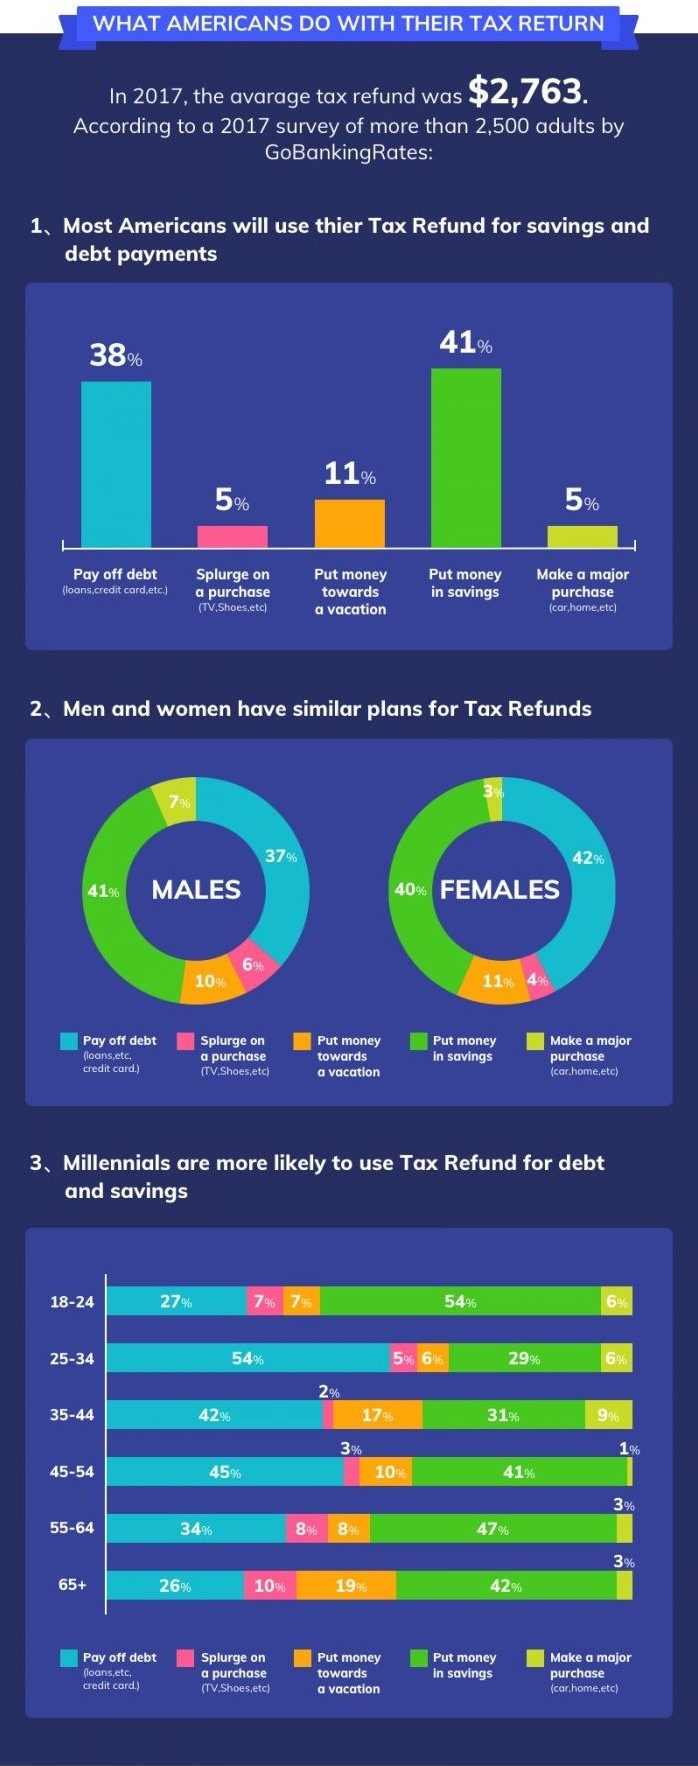 Tax-Returns-and-Tax-Facts-Infographic_excerpt-refunds_DailyInfographic